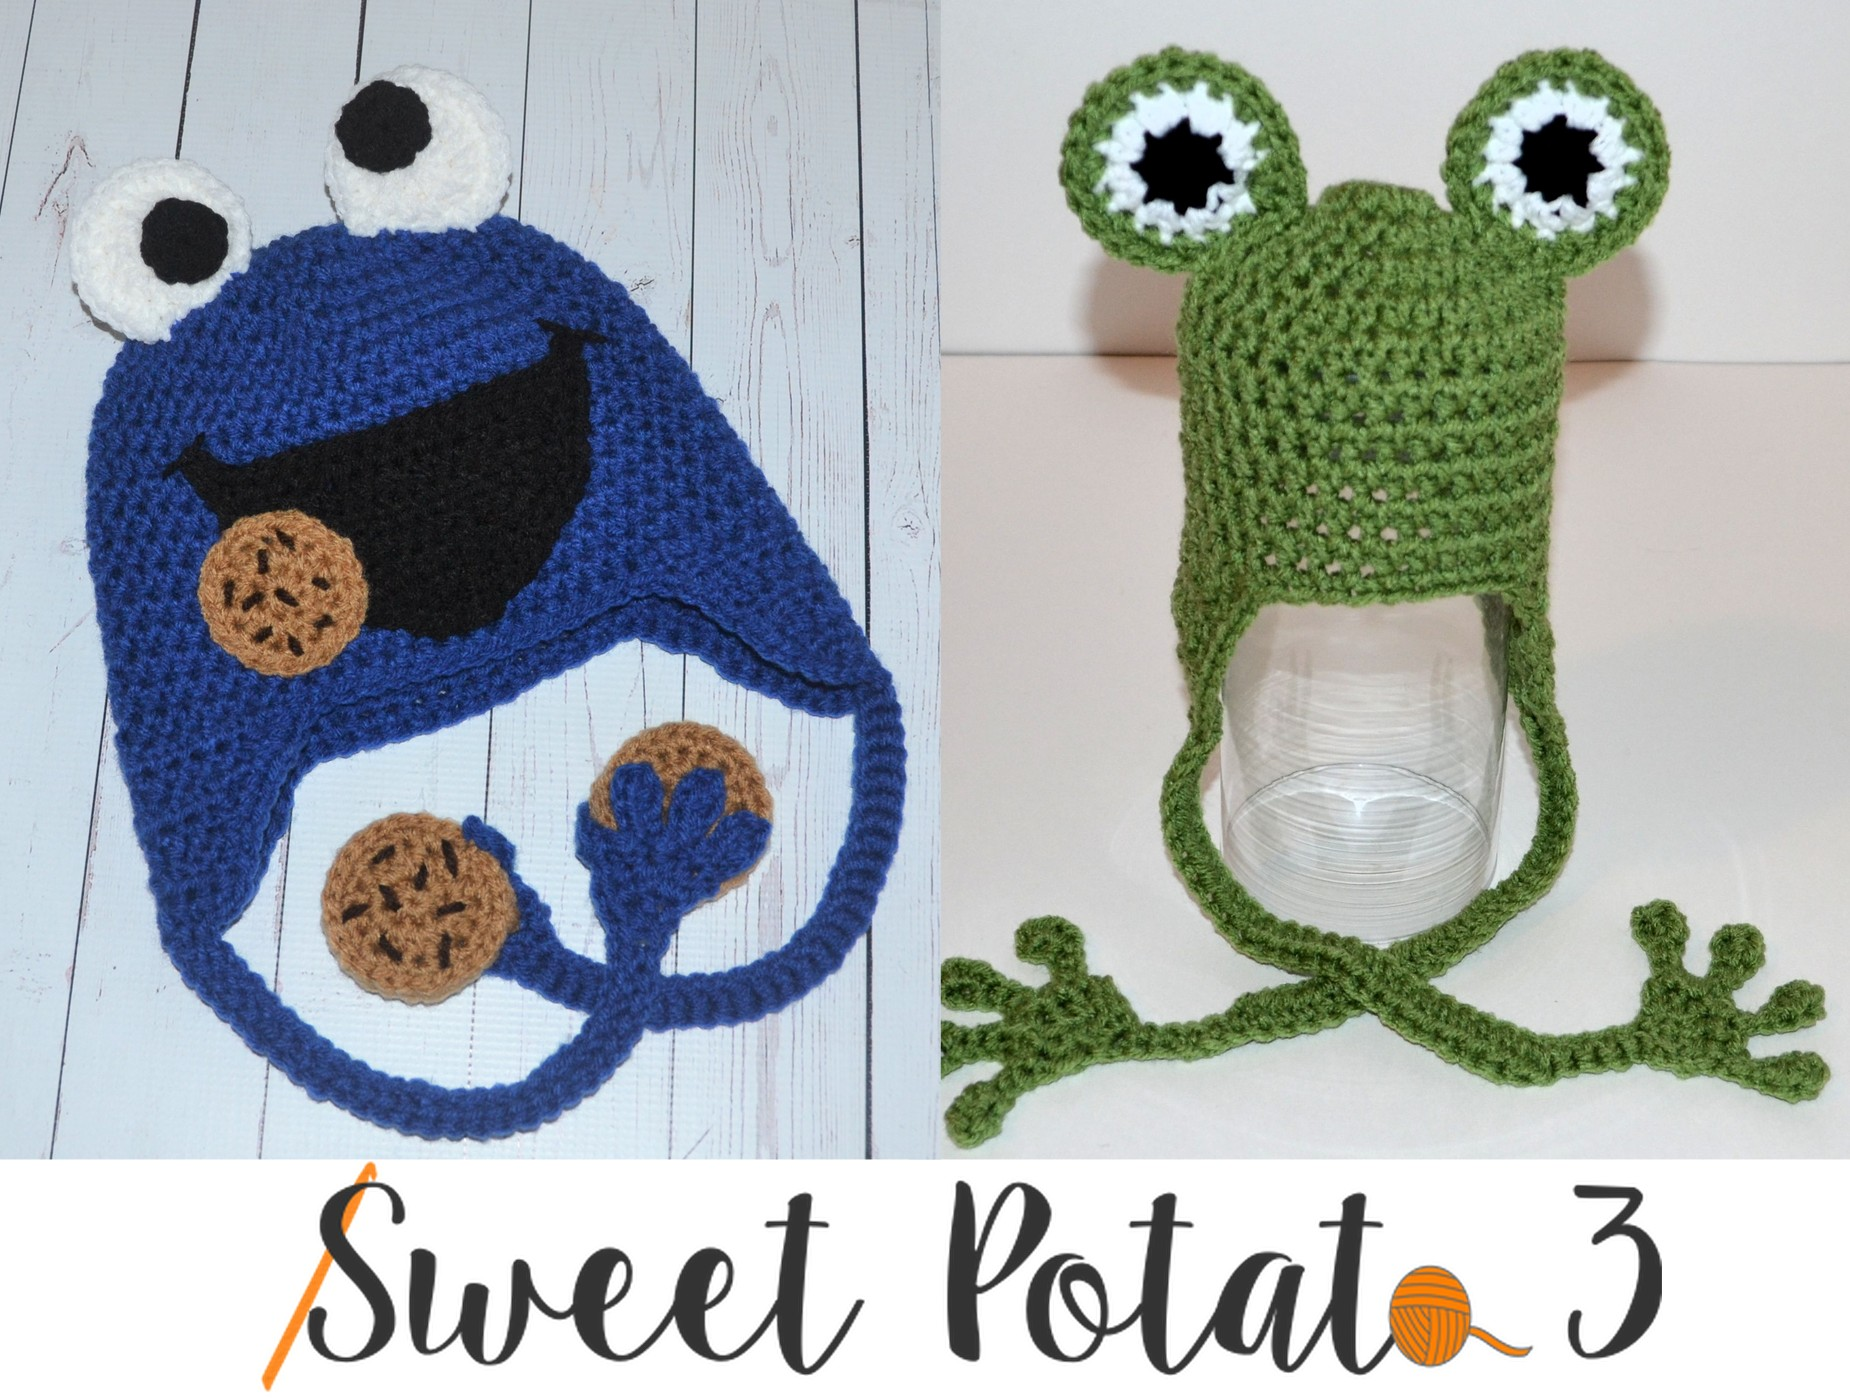 Frog Hat to Cookie Monster Pattern - Free - Sweet Potato 3